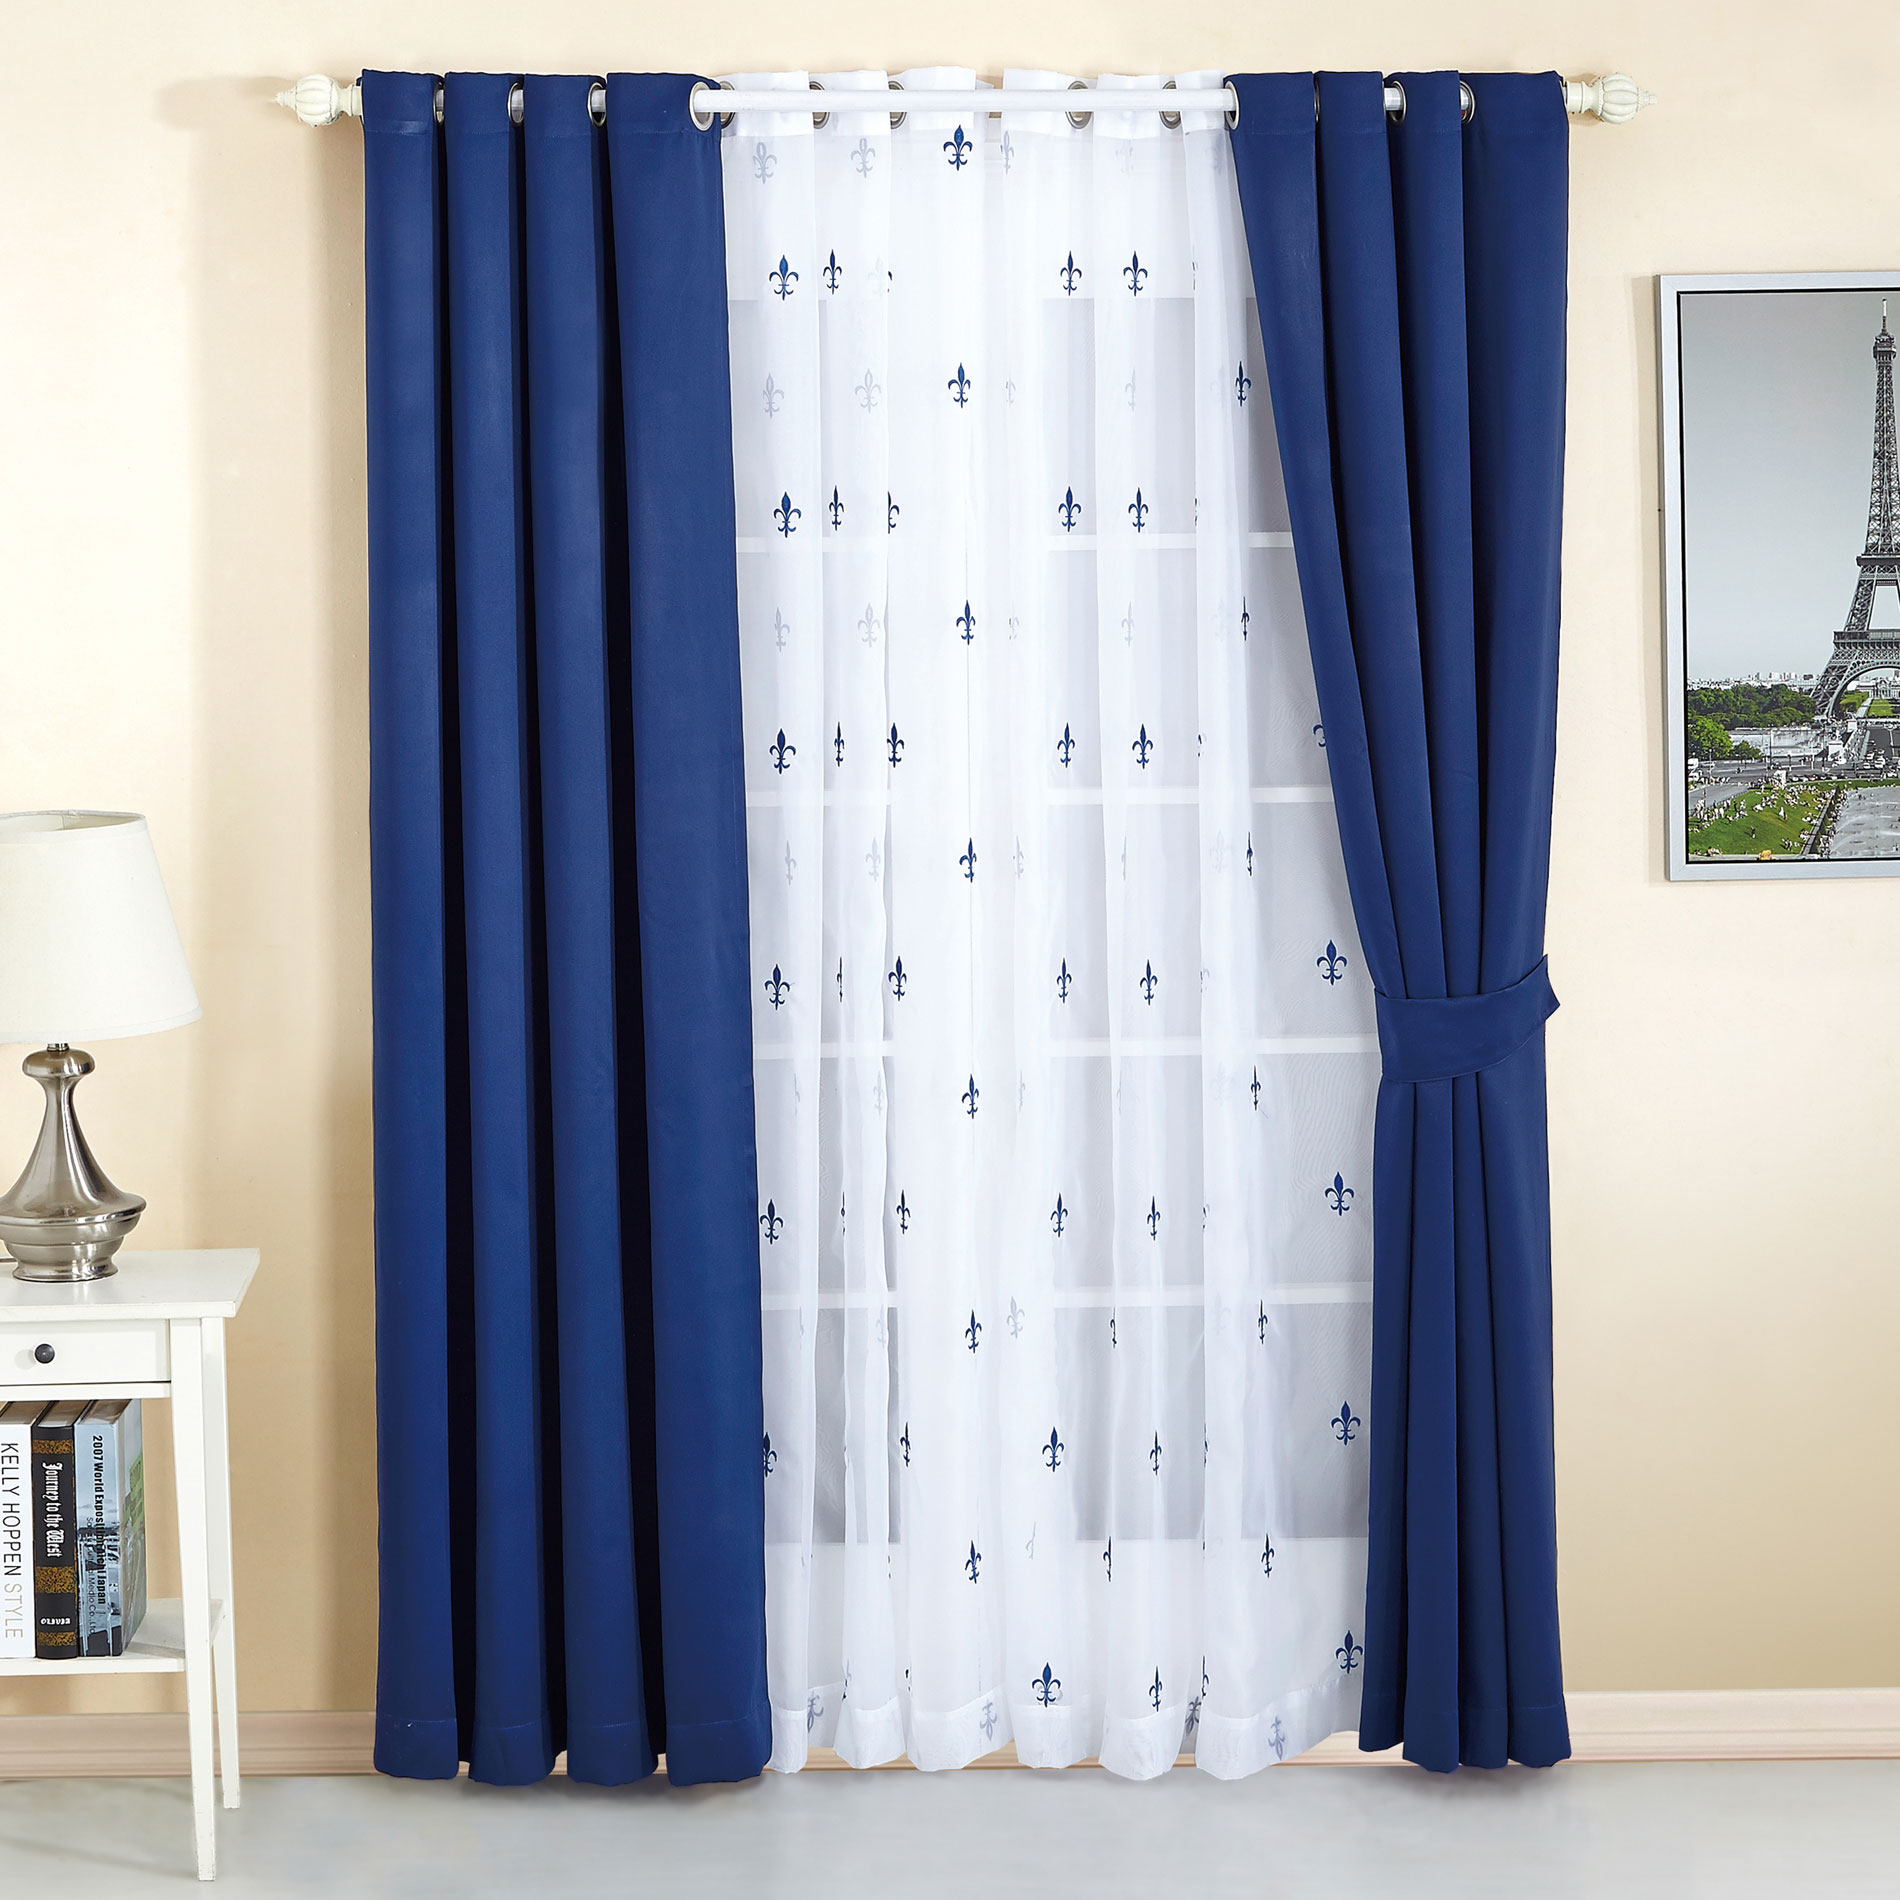 Fleur De Lis Thermal Insulated Blackout Curtain Set | BNF Home Inc